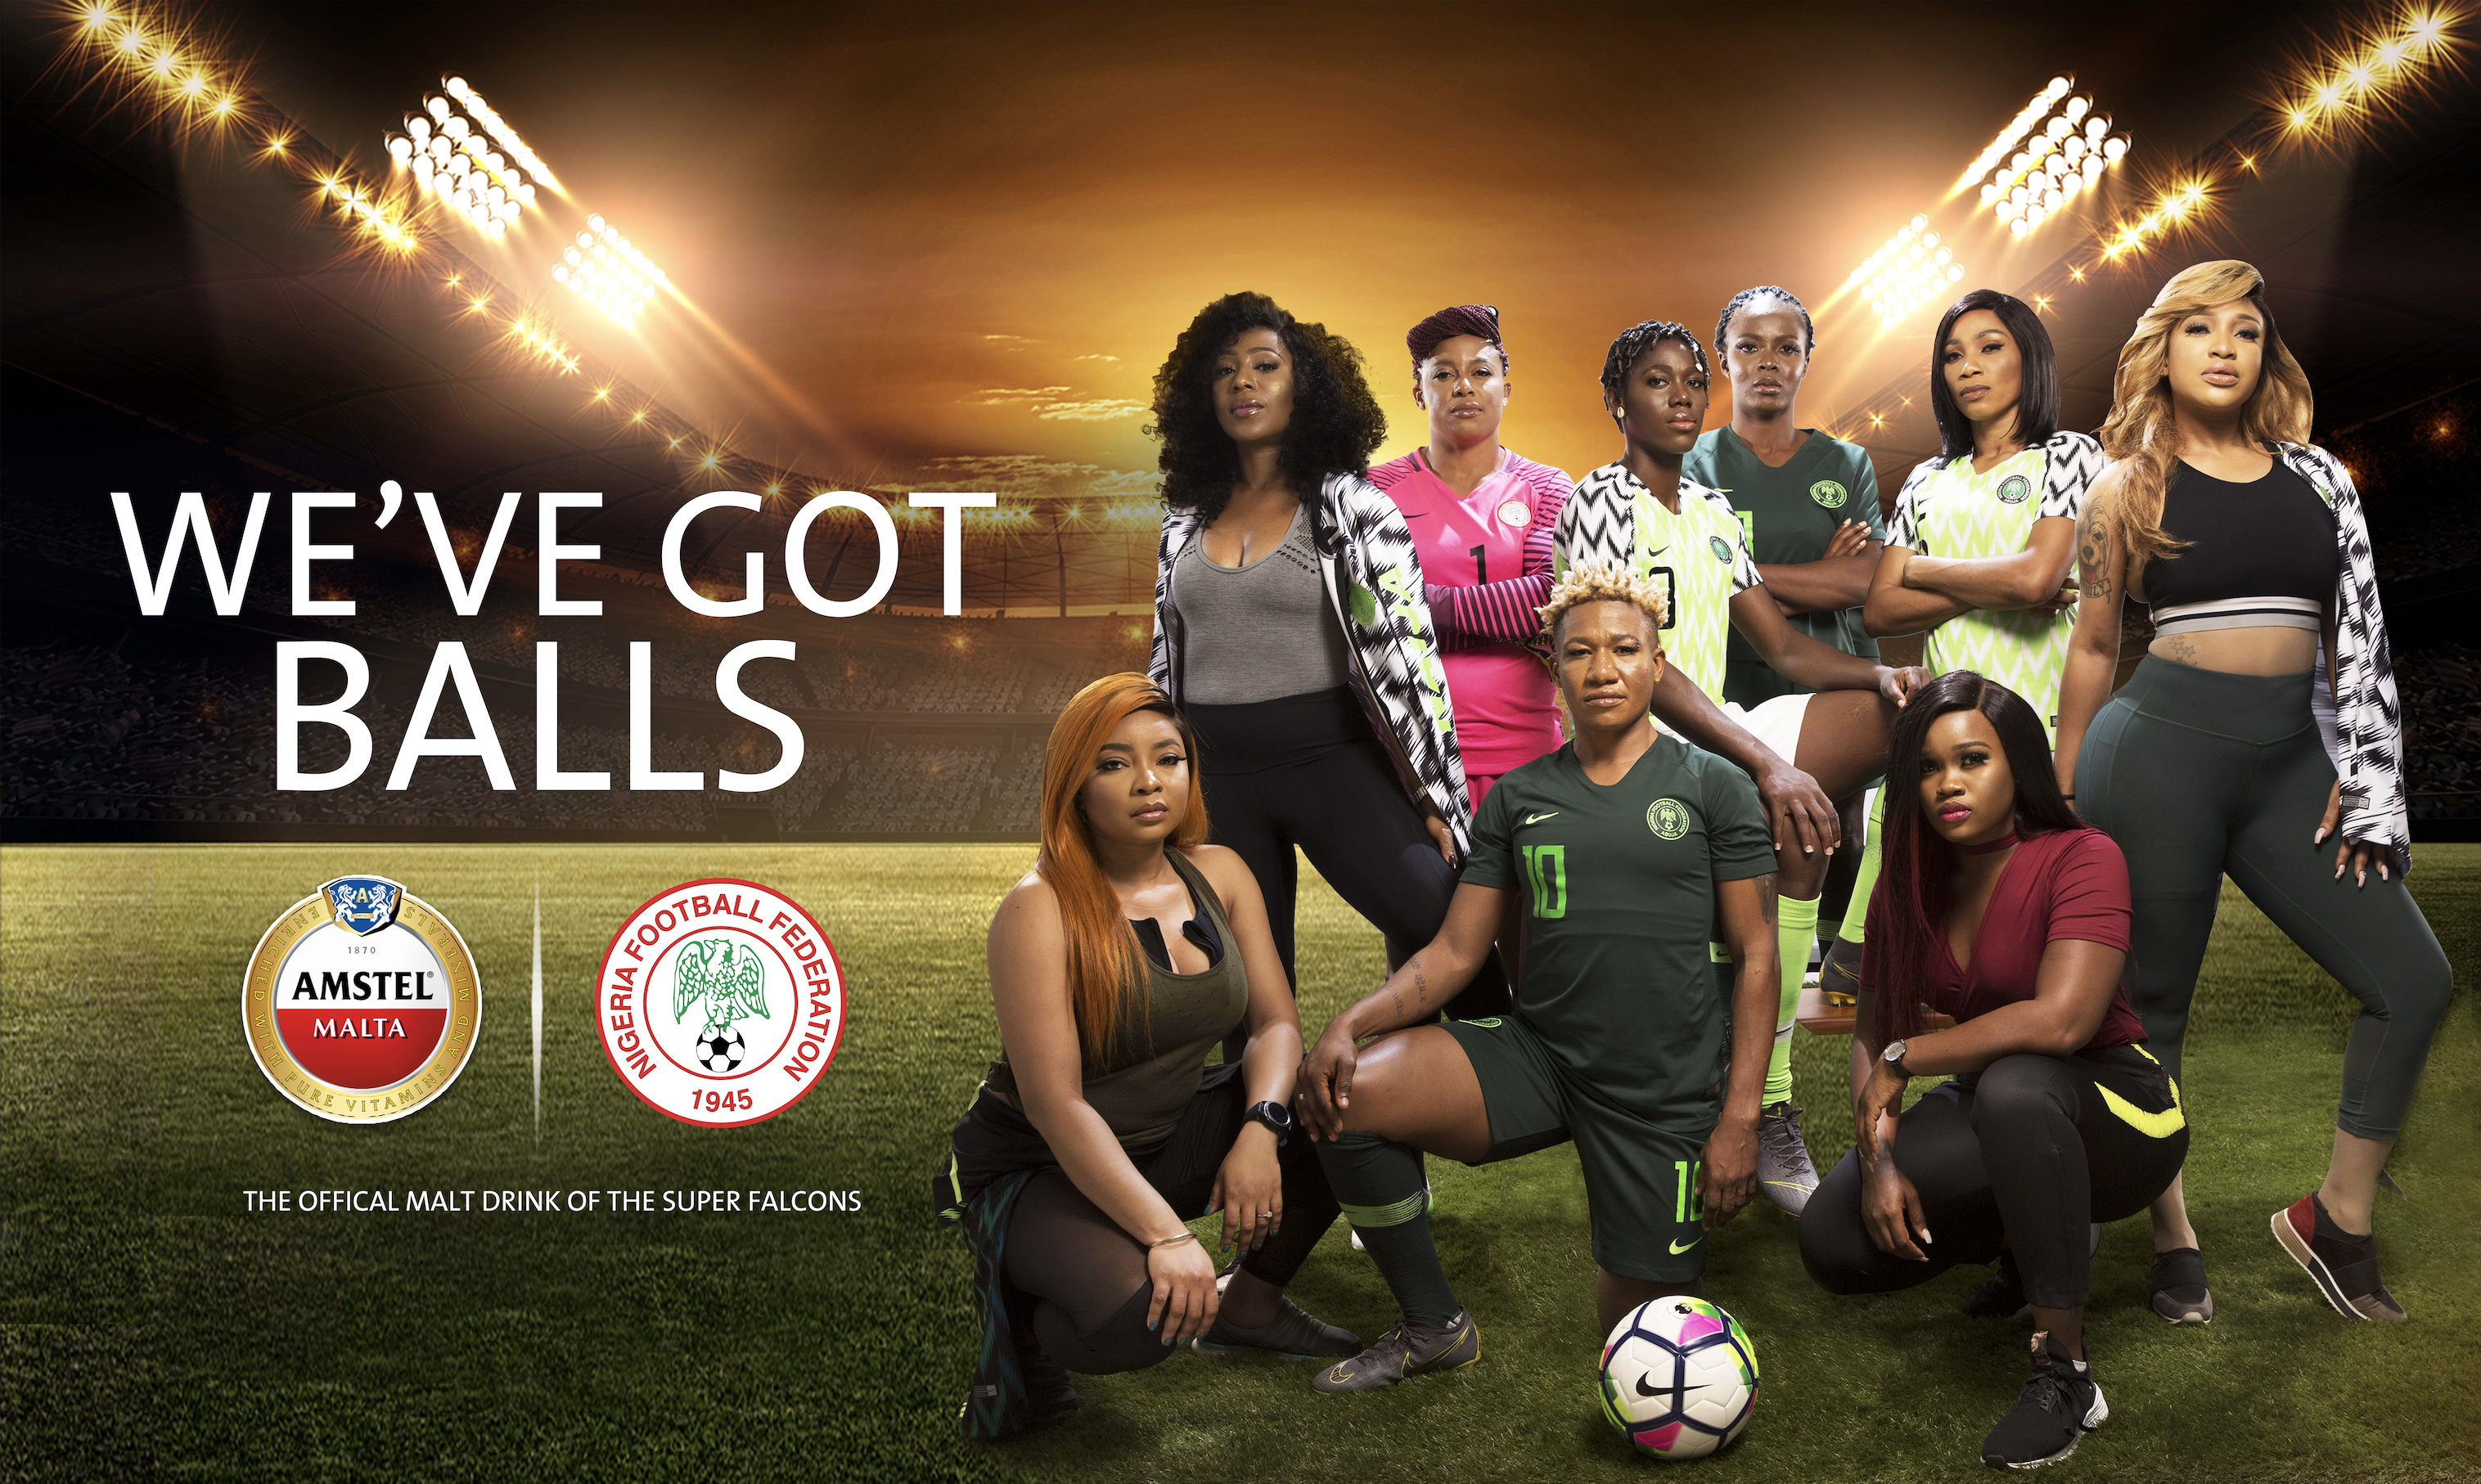 Tiwa Savage, Asisat Oshoala,Tonto Dike, CeeC, Kemi Adetiba, Yetunde Babaeko And Others Come Together To  Showcase The Power Of Women